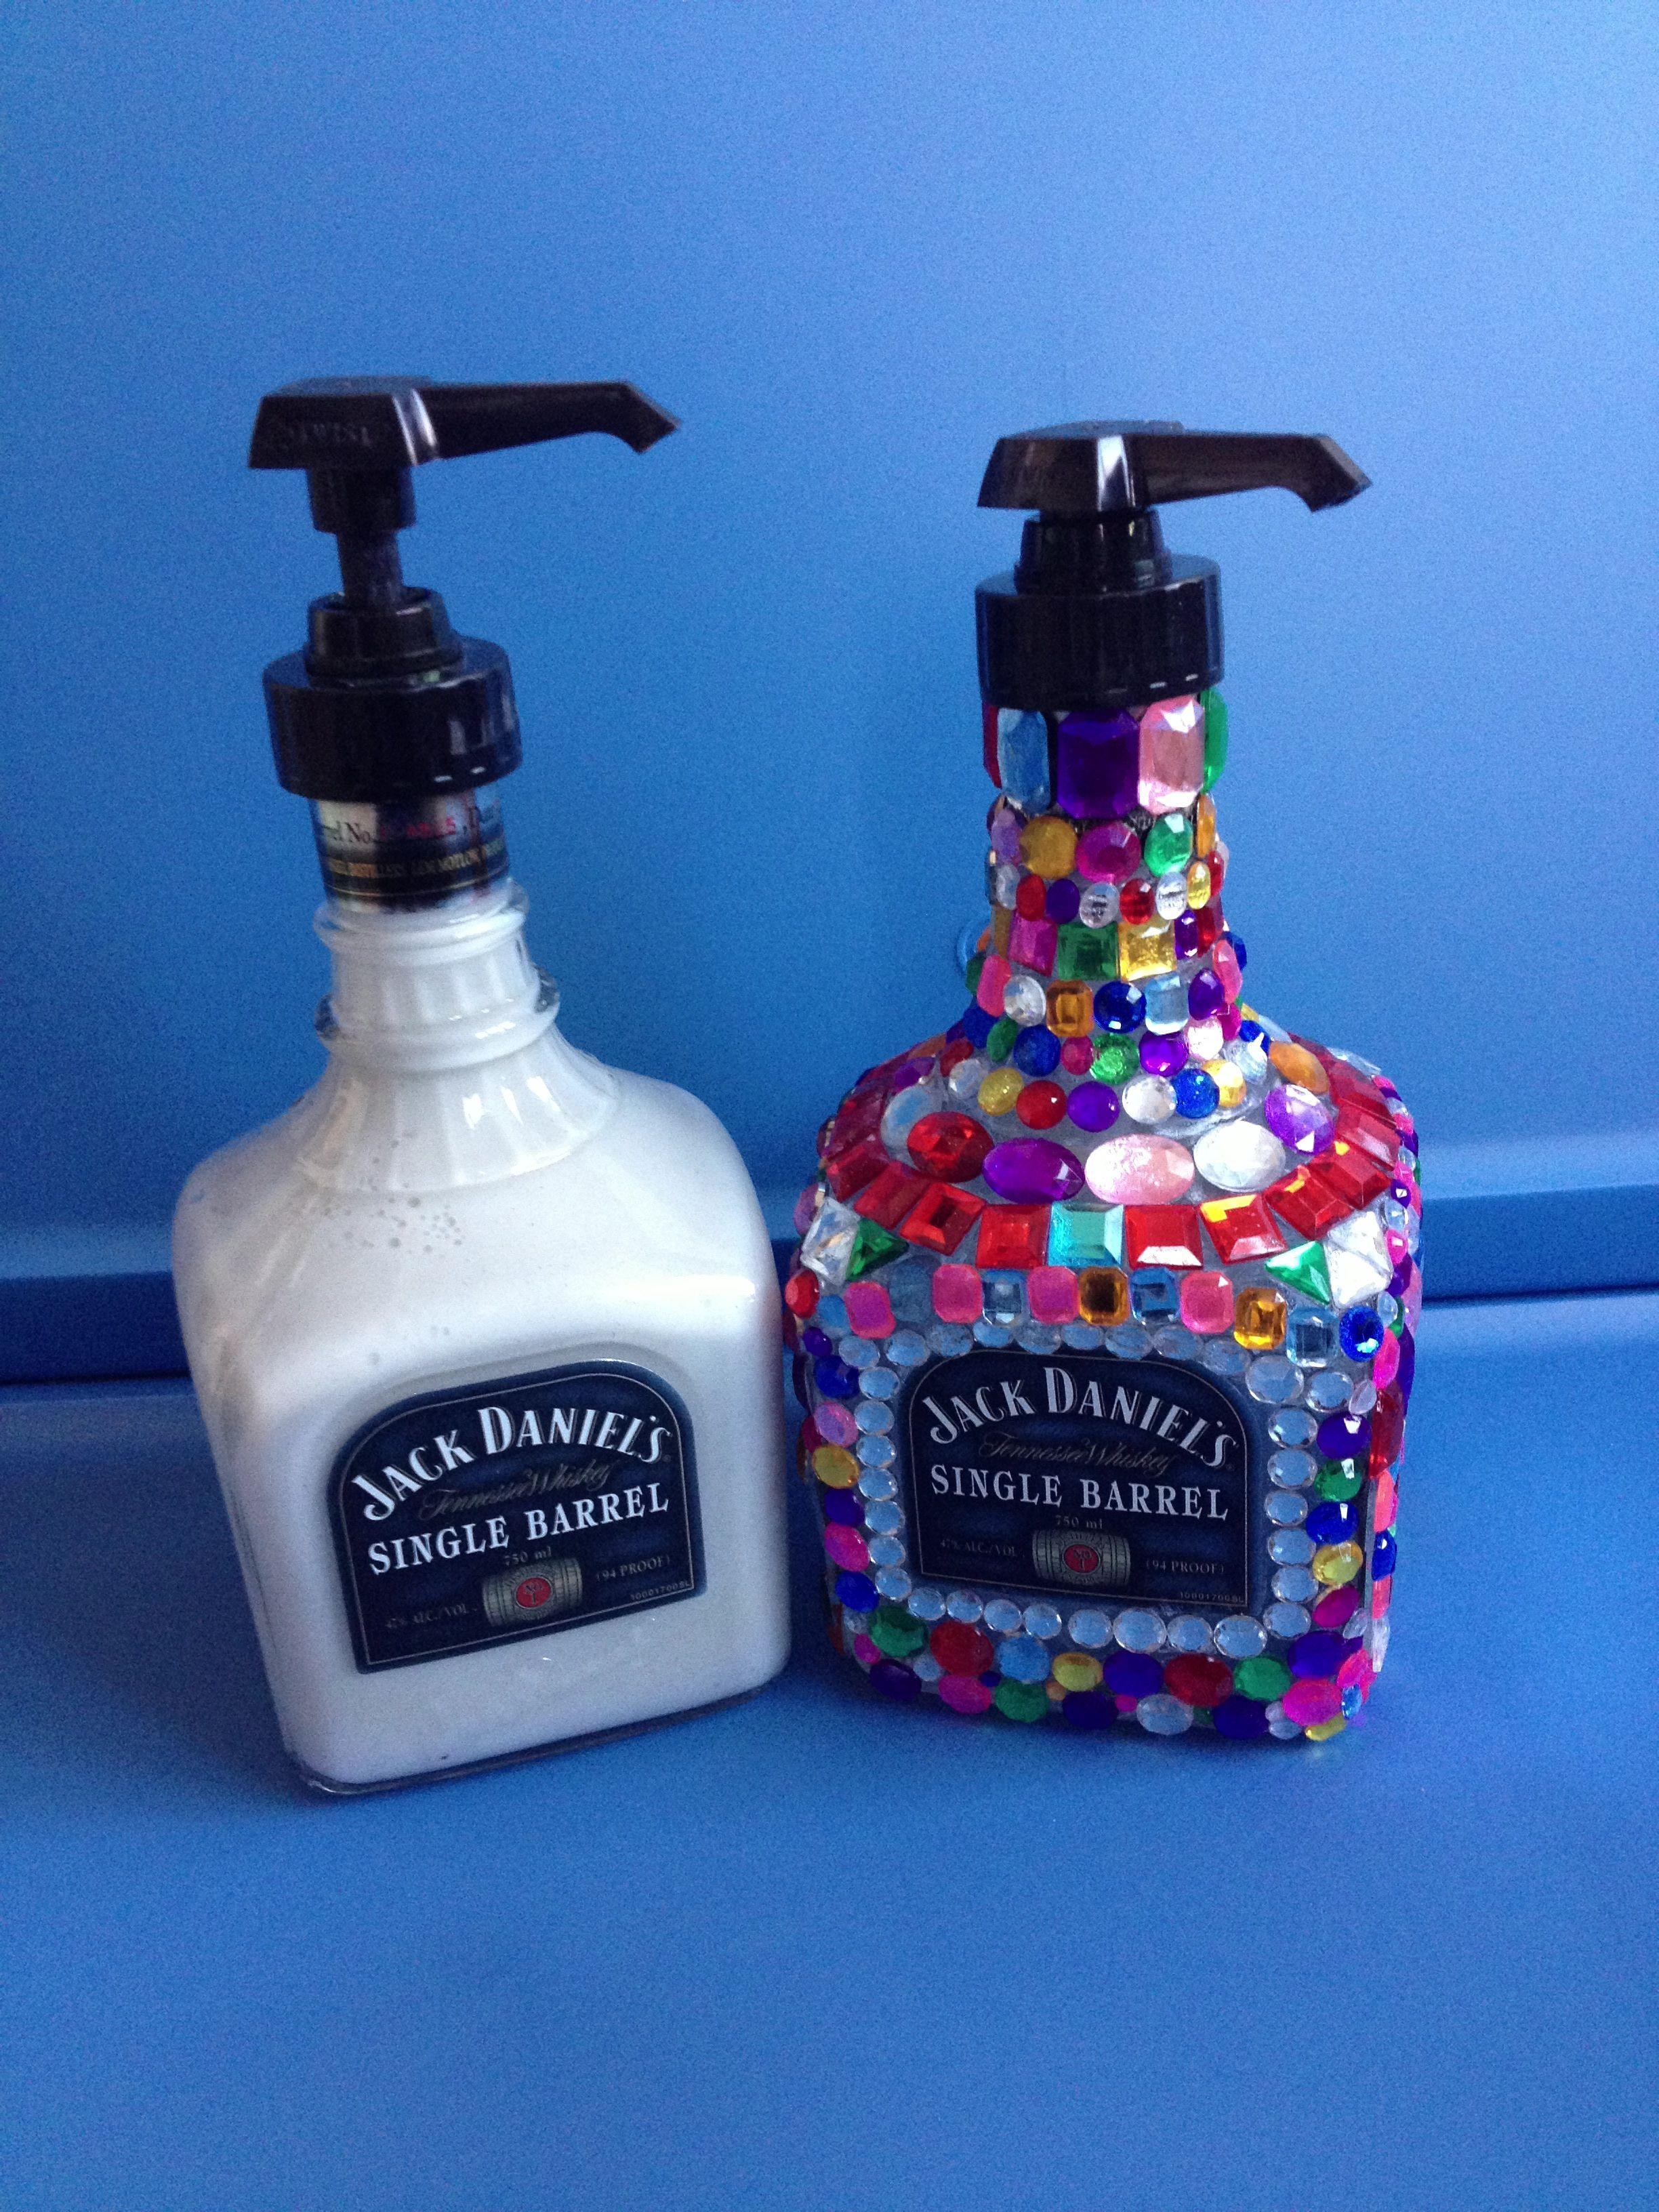 Diy Alcohol Bottle Into A Soap Dispenser No Bathroom In The Man